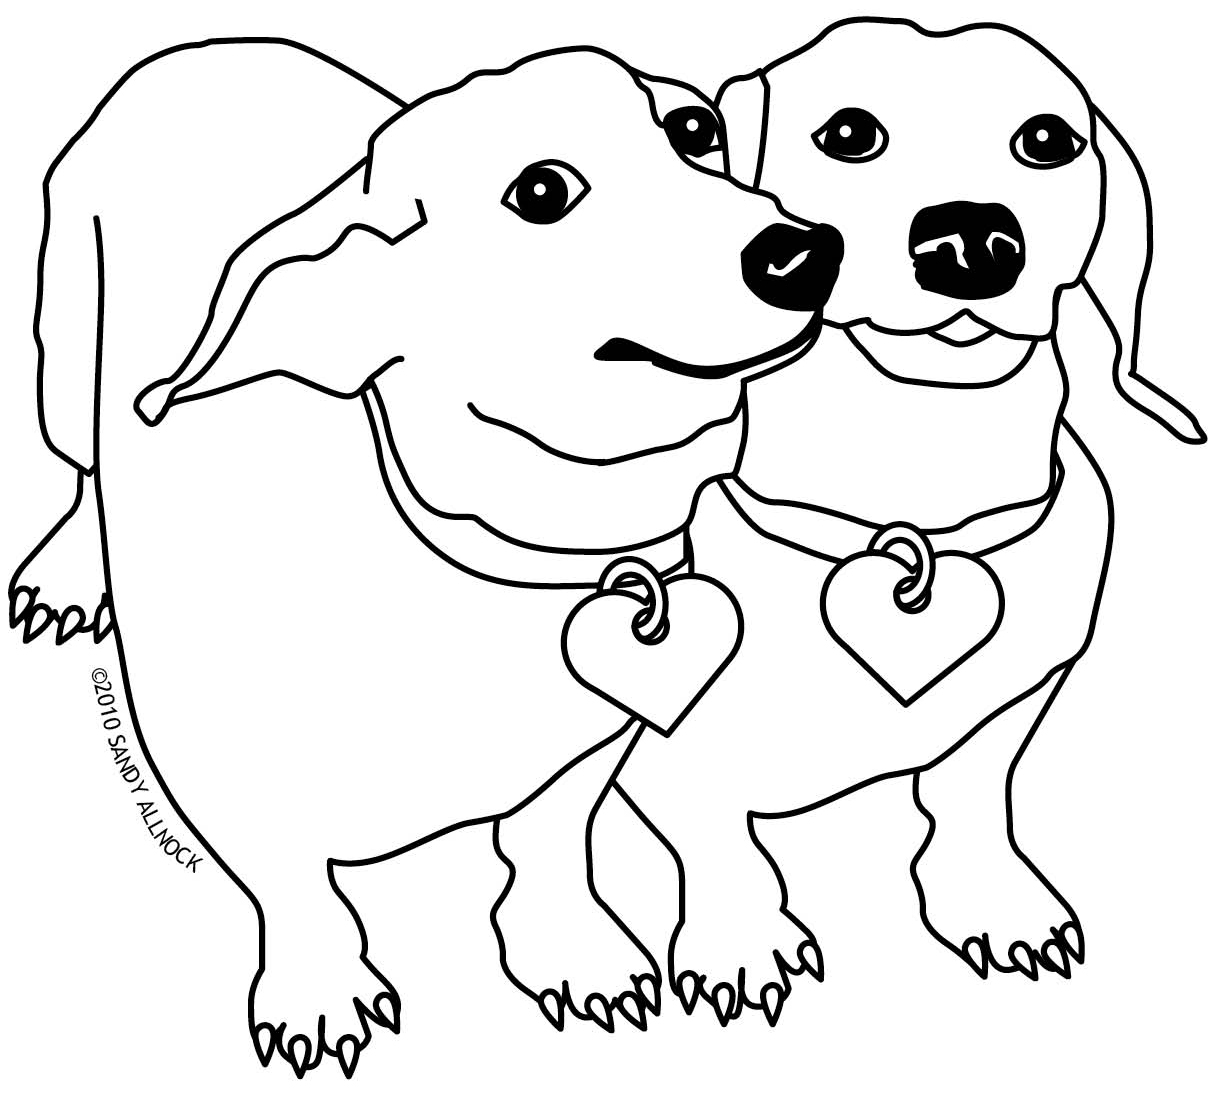 1224x1097 Printable Clifford The Big Red Dog Coloring Pages